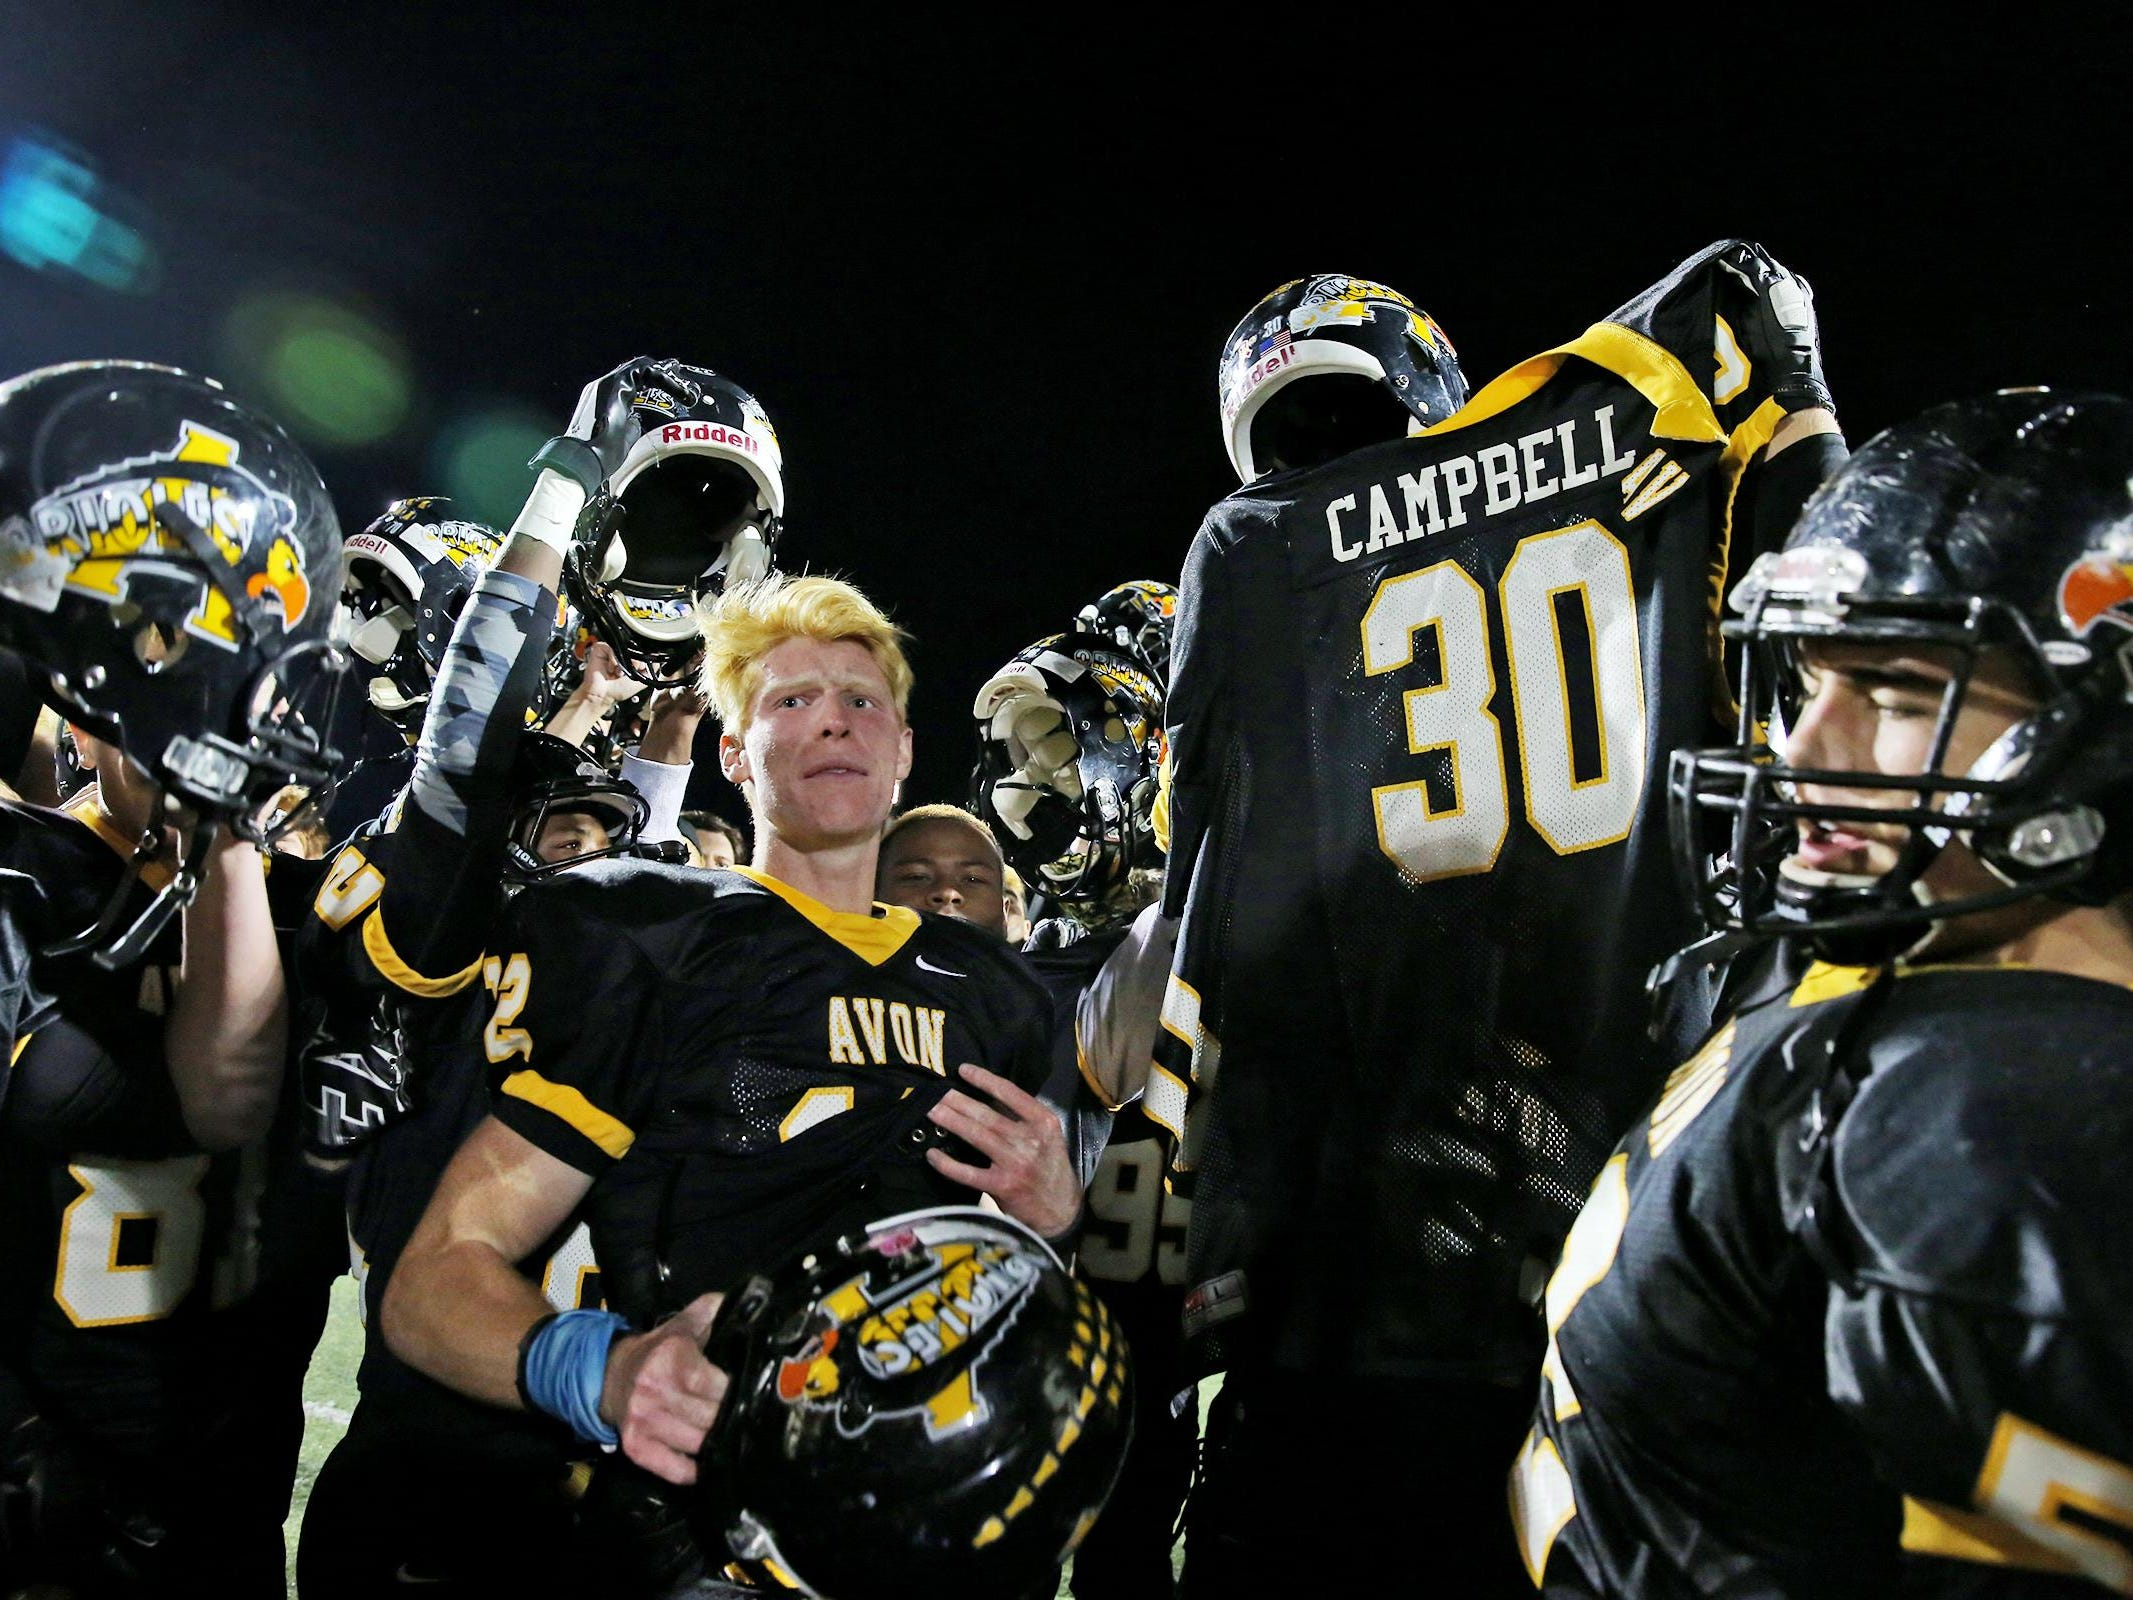 Avon players hold up injured teammate Scott Campbell's jersey as they celebrate the team victory after the Ben Davis at Avon sectional championship, Friday, October 30, 2015. Avon won 27-22. Campbell was injured during the first half and taken off the field by stretcher, then by ambulance to the hospital. Teammates said they won the game for Scott.